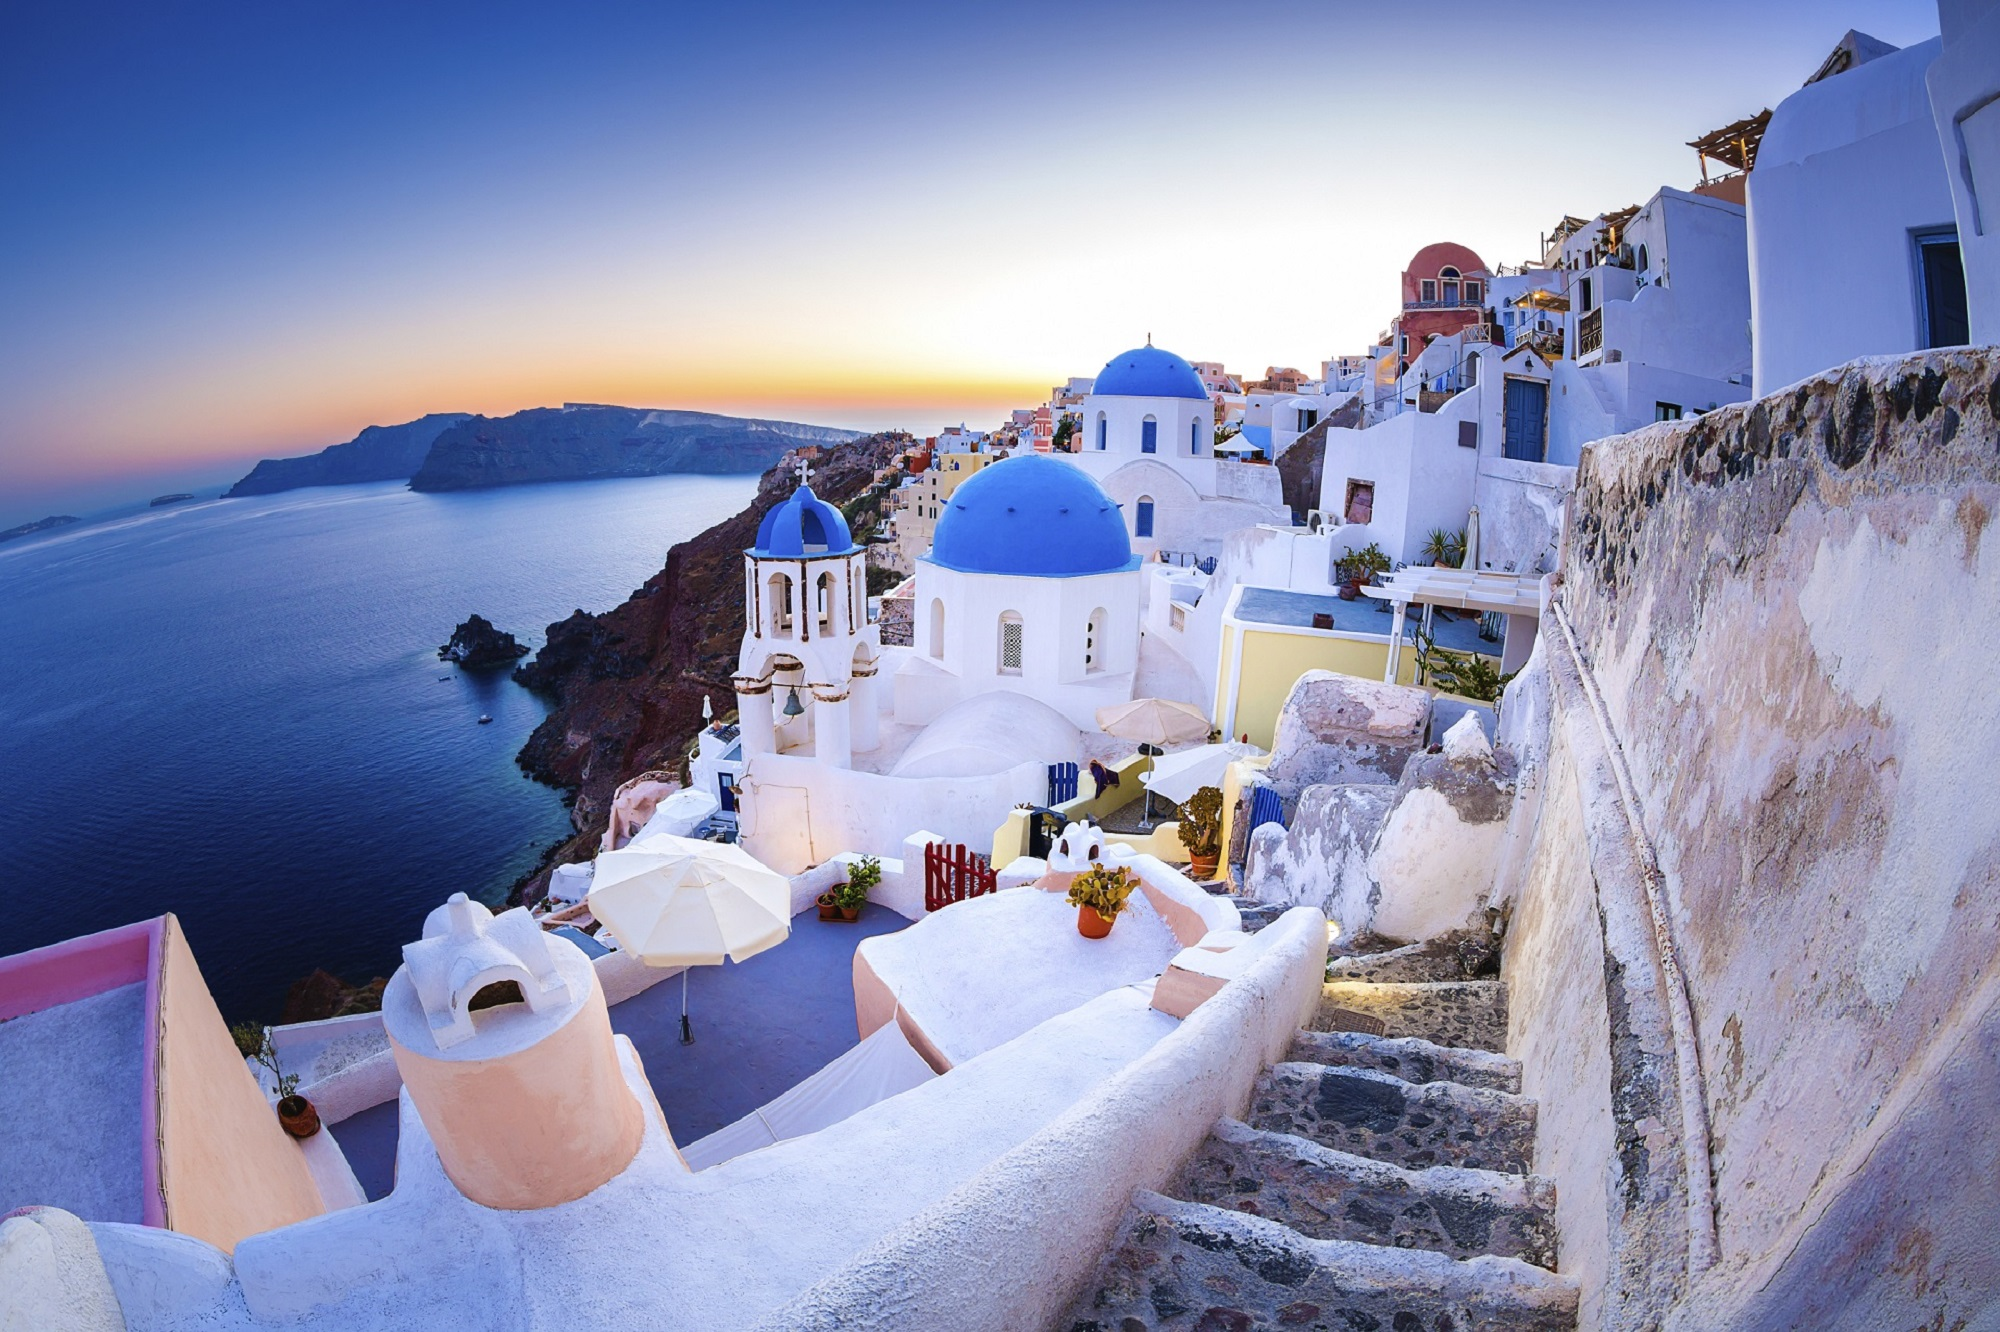 Traditional Greek village Oia (Ia) on Santorini island in dusk. Click for more images: [url=file_closeup.php?id=9701552][img]file_thumbview_approve.php?size=1&id=9701552[/img][/url] [url=file_closeup.php?id=9701515][img]file_thumbview_approve.php?size=1&id=9701515[/img][/url] [url=file_closeup.php?id=9701504][img]file_thumbview_approve.php?size=1&id=9701504[/img][/url] [url=file_closeup.php?id=9701472][img]file_thumbview_approve.php?size=1&id=9701472[/img][/url] [url=file_closeup.php?id=9701450][img]file_thumbview_approve.php?size=1&id=9701450[/img][/url] [url=file_closeup.php?id=9701281][img]file_thumbview_approve.php?size=1&id=9701281[/img][/url] [url=file_closeup.php?id=9697520][img]file_thumbview_approve.php?size=1&id=9697520[/img][/url] [url=file_closeup.php?id=2637803][img]file_thumbview_approve.php?size=1&id=2637803[/img][/url] [url=file_closeup.php?id=9751572][img]file_thumbview_approve.php?size=1&id=9751572[/img][/url] [url=file_closeup.php?id=9749064][img]file_thumbview_approve.php?size=1&id=9749064[/img][/url] [url=file_closeup.php?id=9728858][img]file_thumbview_approve.php?size=1&id=9728858[/img][/url] [url=file_closeup.php?id=9728820][img]file_thumbview_approve.php?size=1&id=9728820[/img][/url]